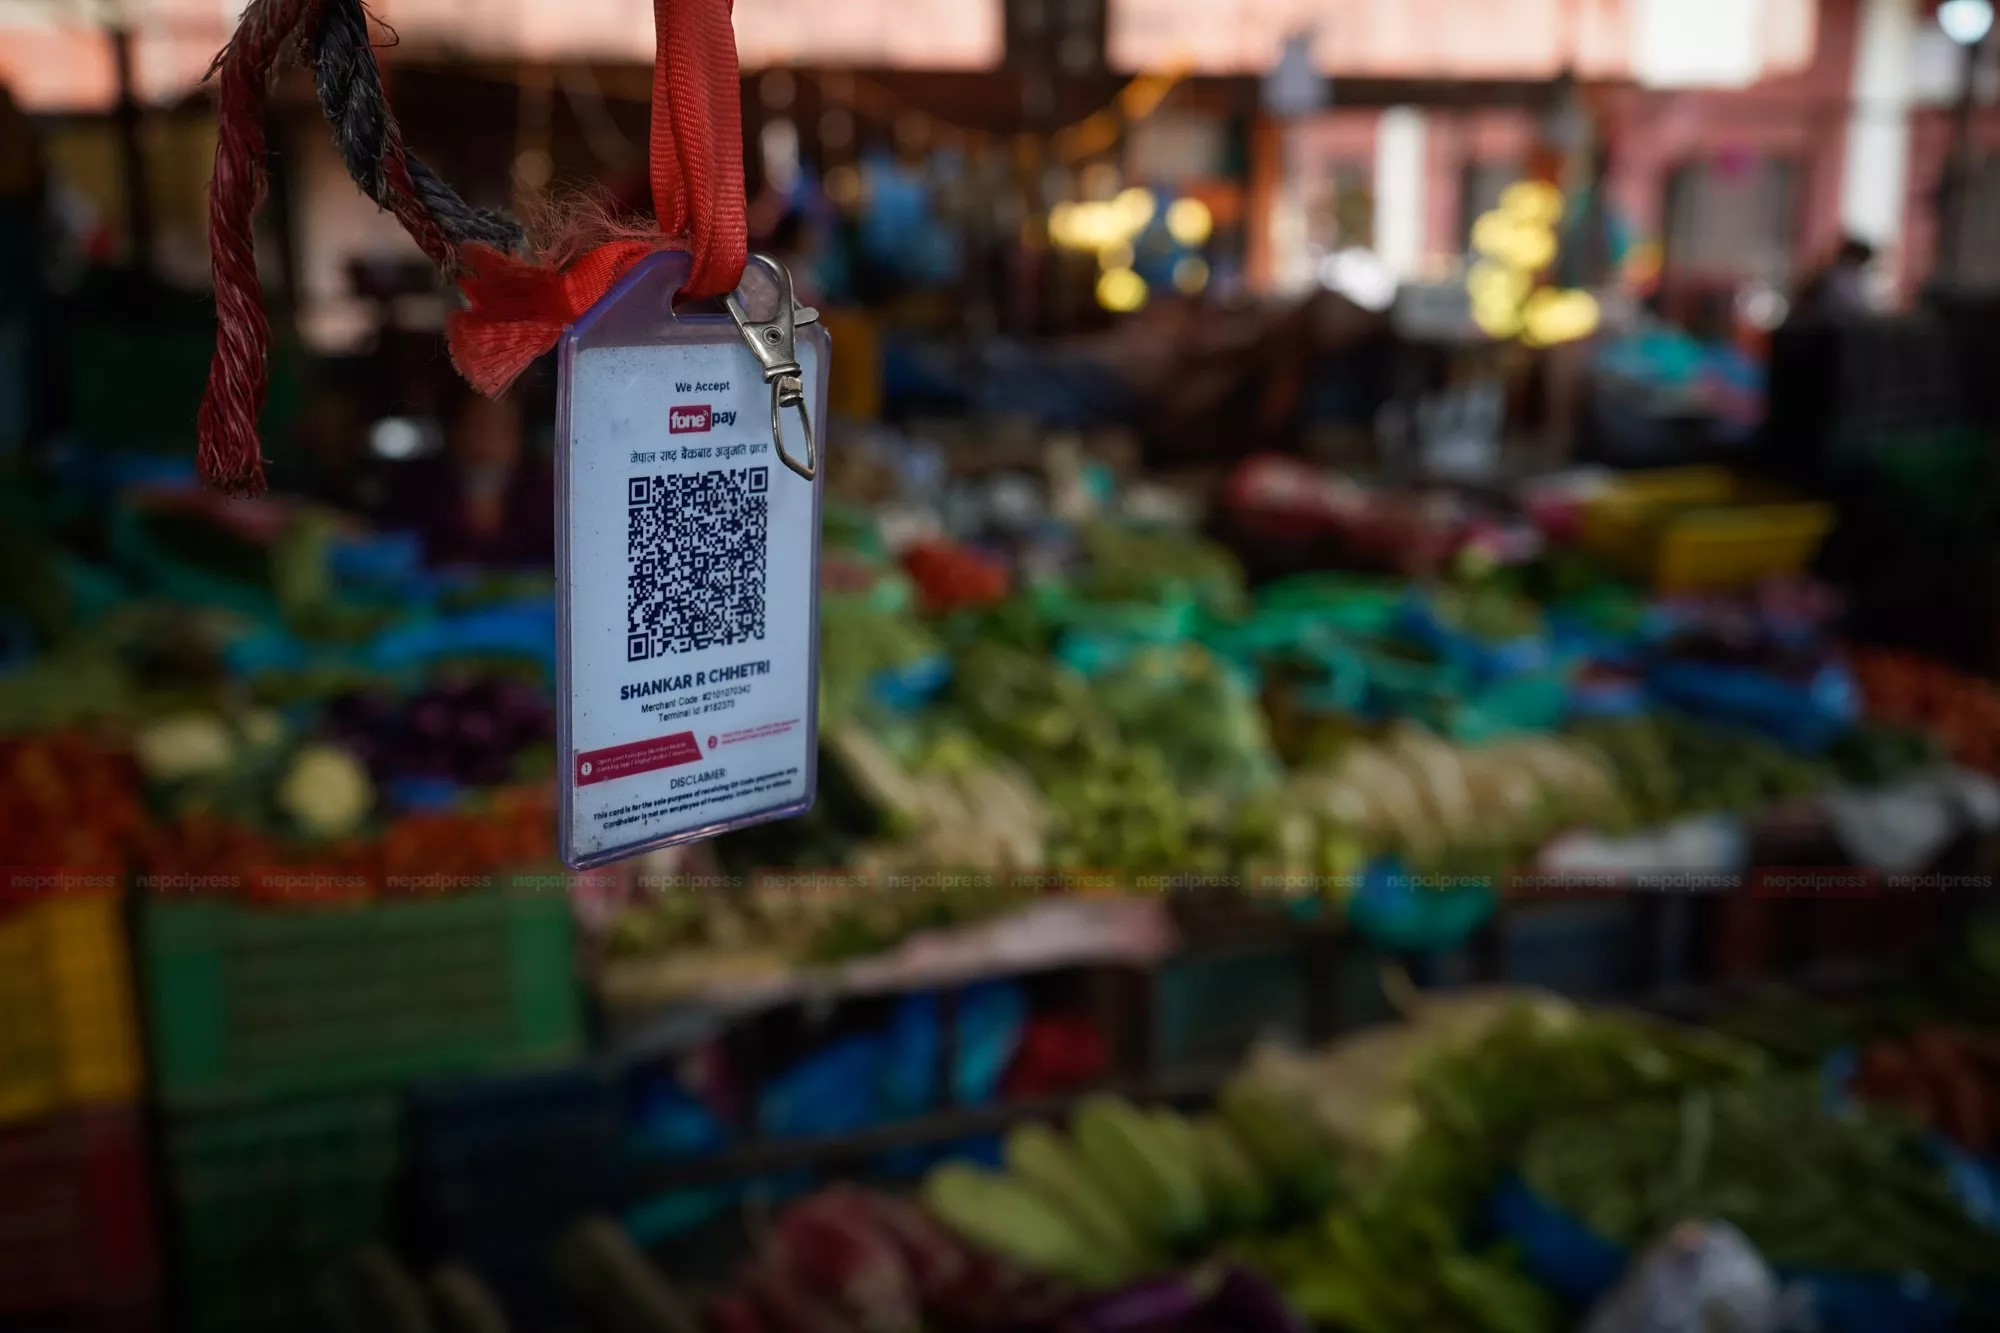 QR codes are everywhere, but how much are they used?